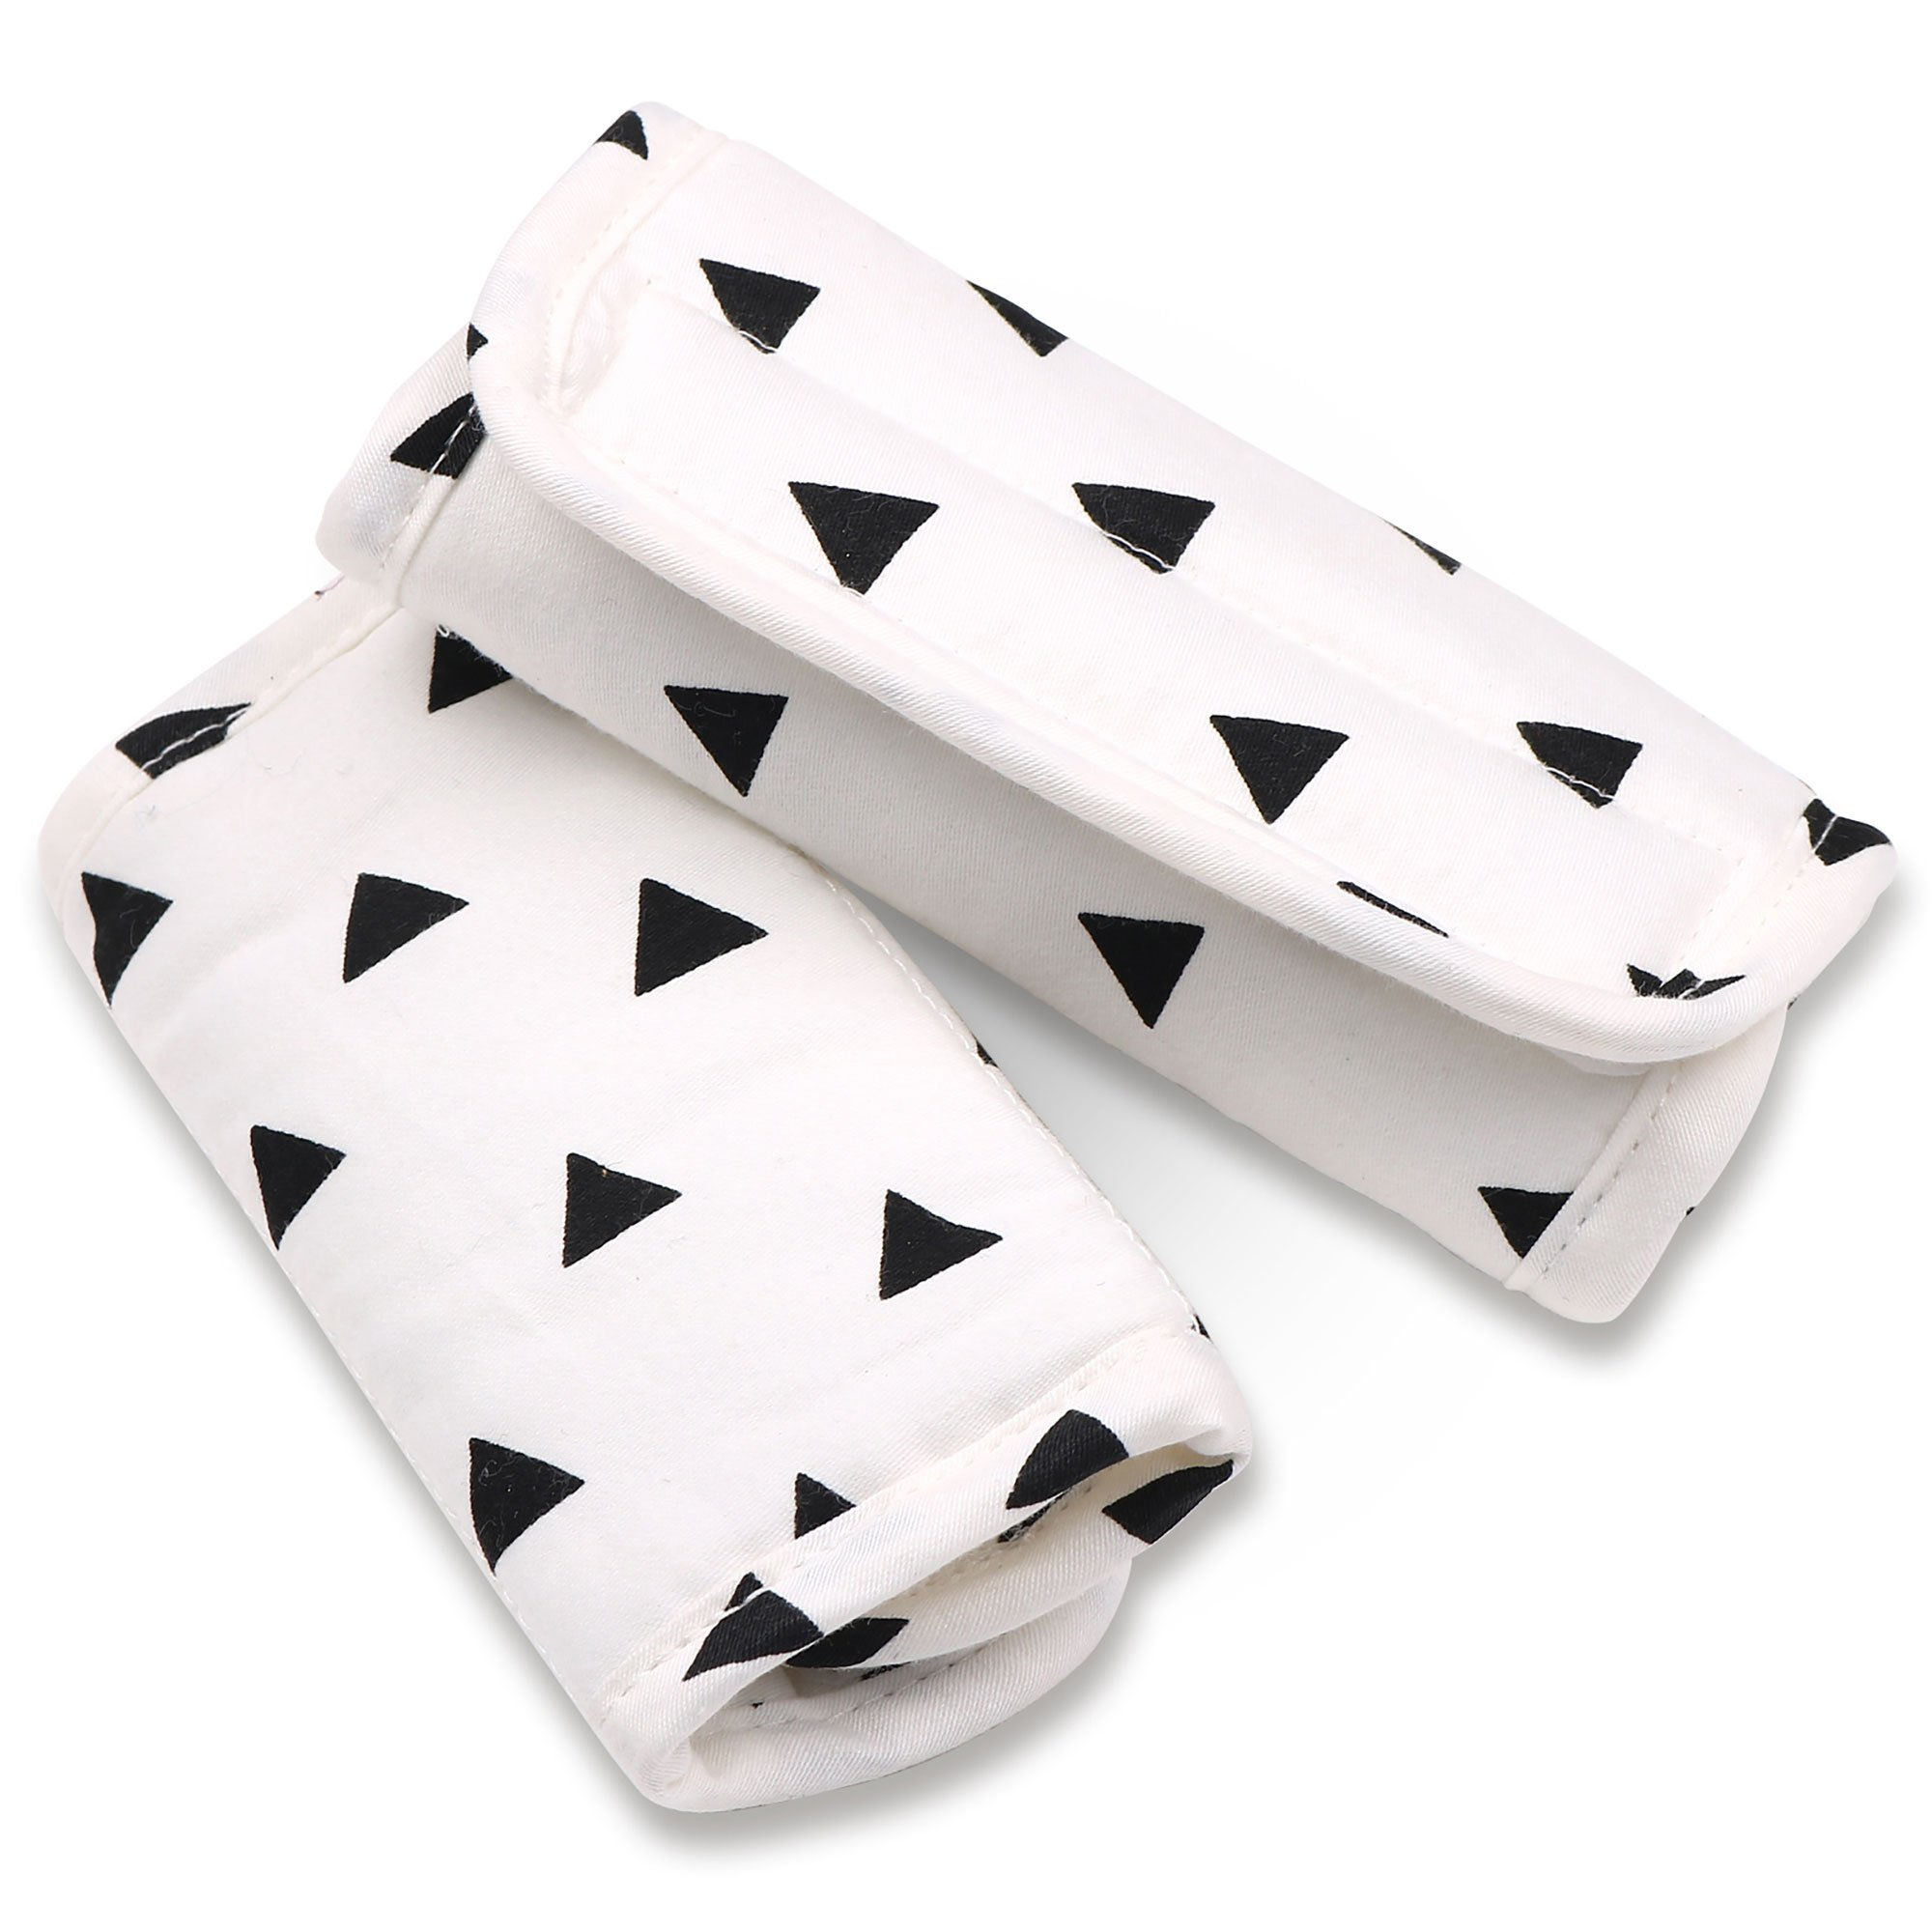 Black Triangle Car Seat and Stroller Strap Covers by The Peanut Shell by The Peanut Shell